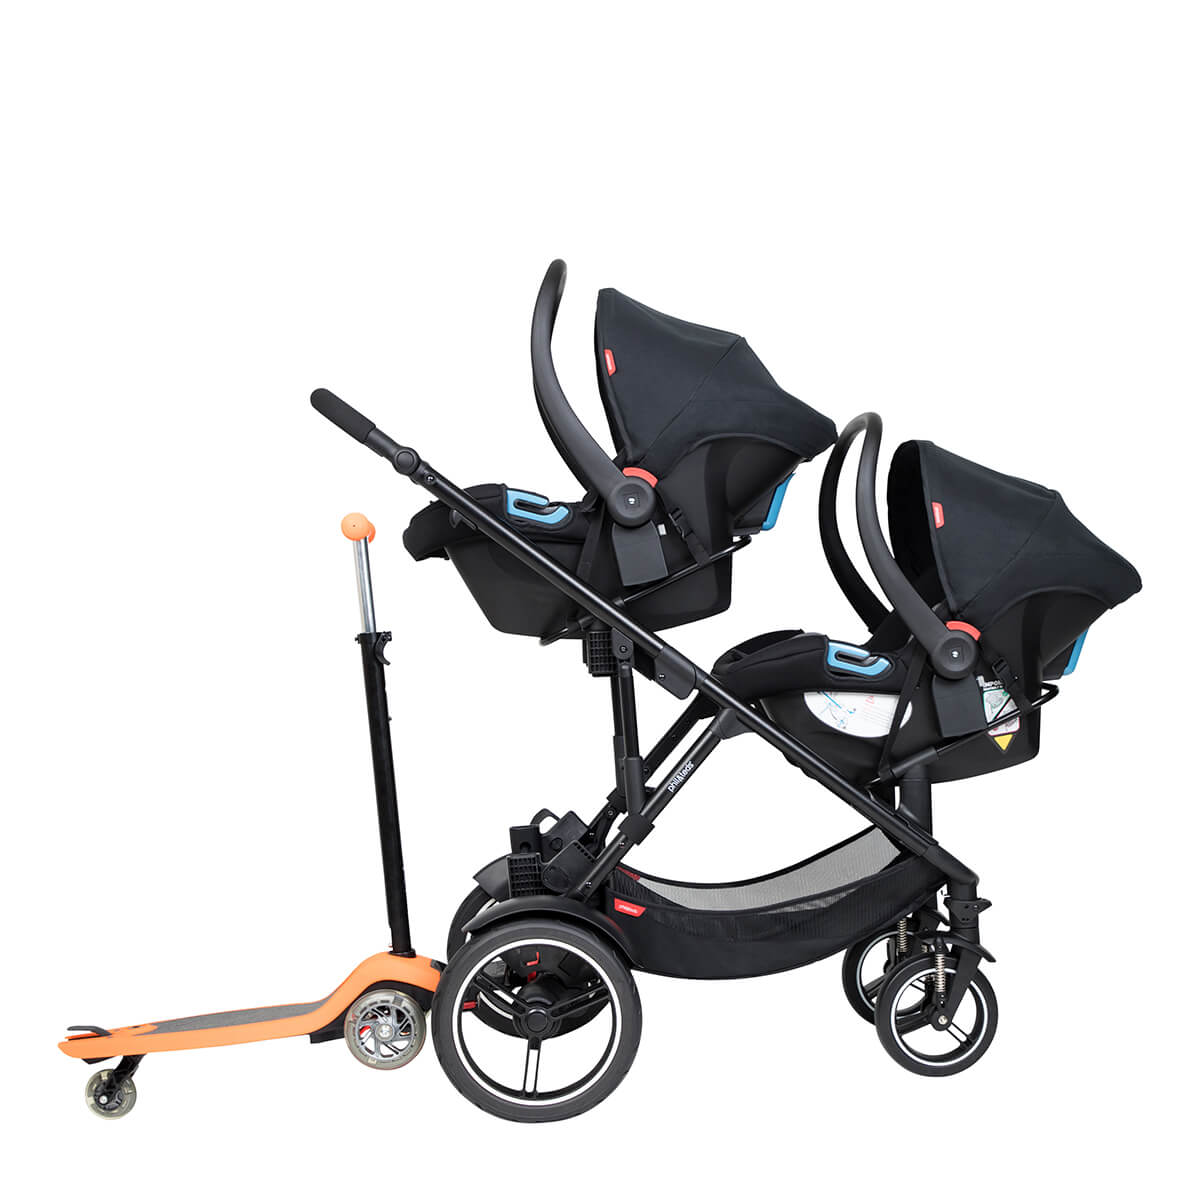 https://cdn.accentuate.io/4509529440344/19272835367000/philteds-voyager-poussette-with-double-travel-systems-and-freerider-stroller-board-in-the-rear-v1626484677910.jpg?1200x1200